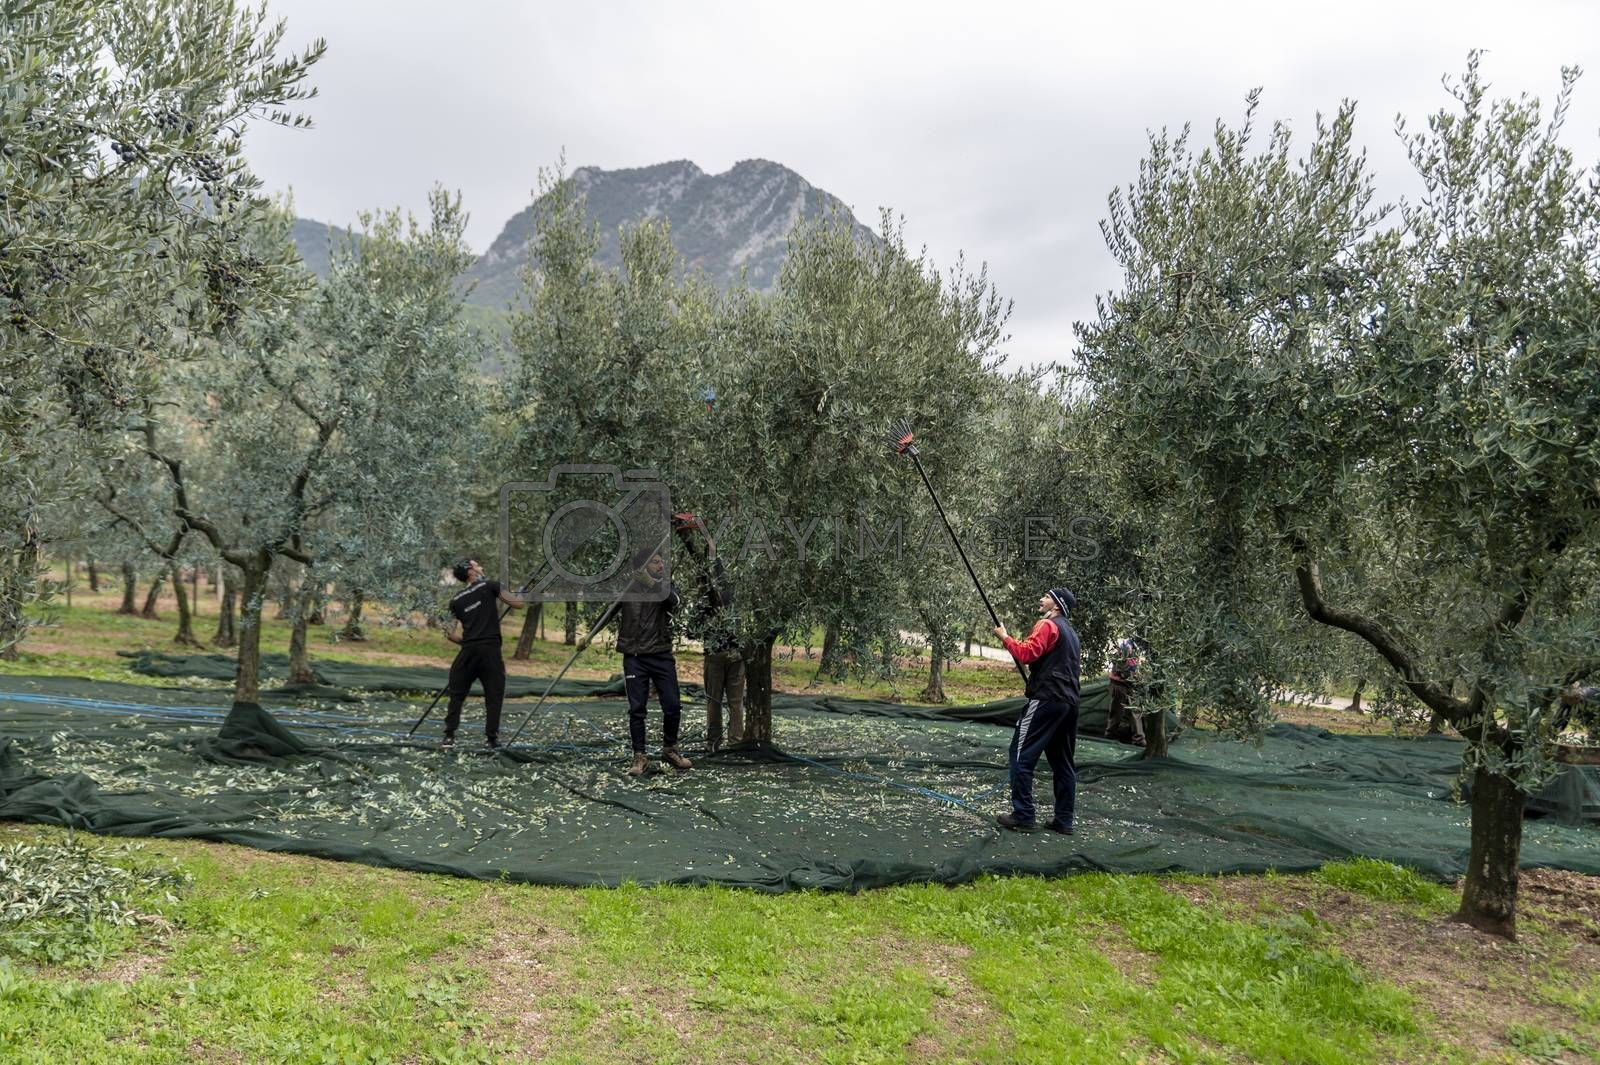 terni,italy november 12 2020:olive harvesting workers with towels and hydraulic hands